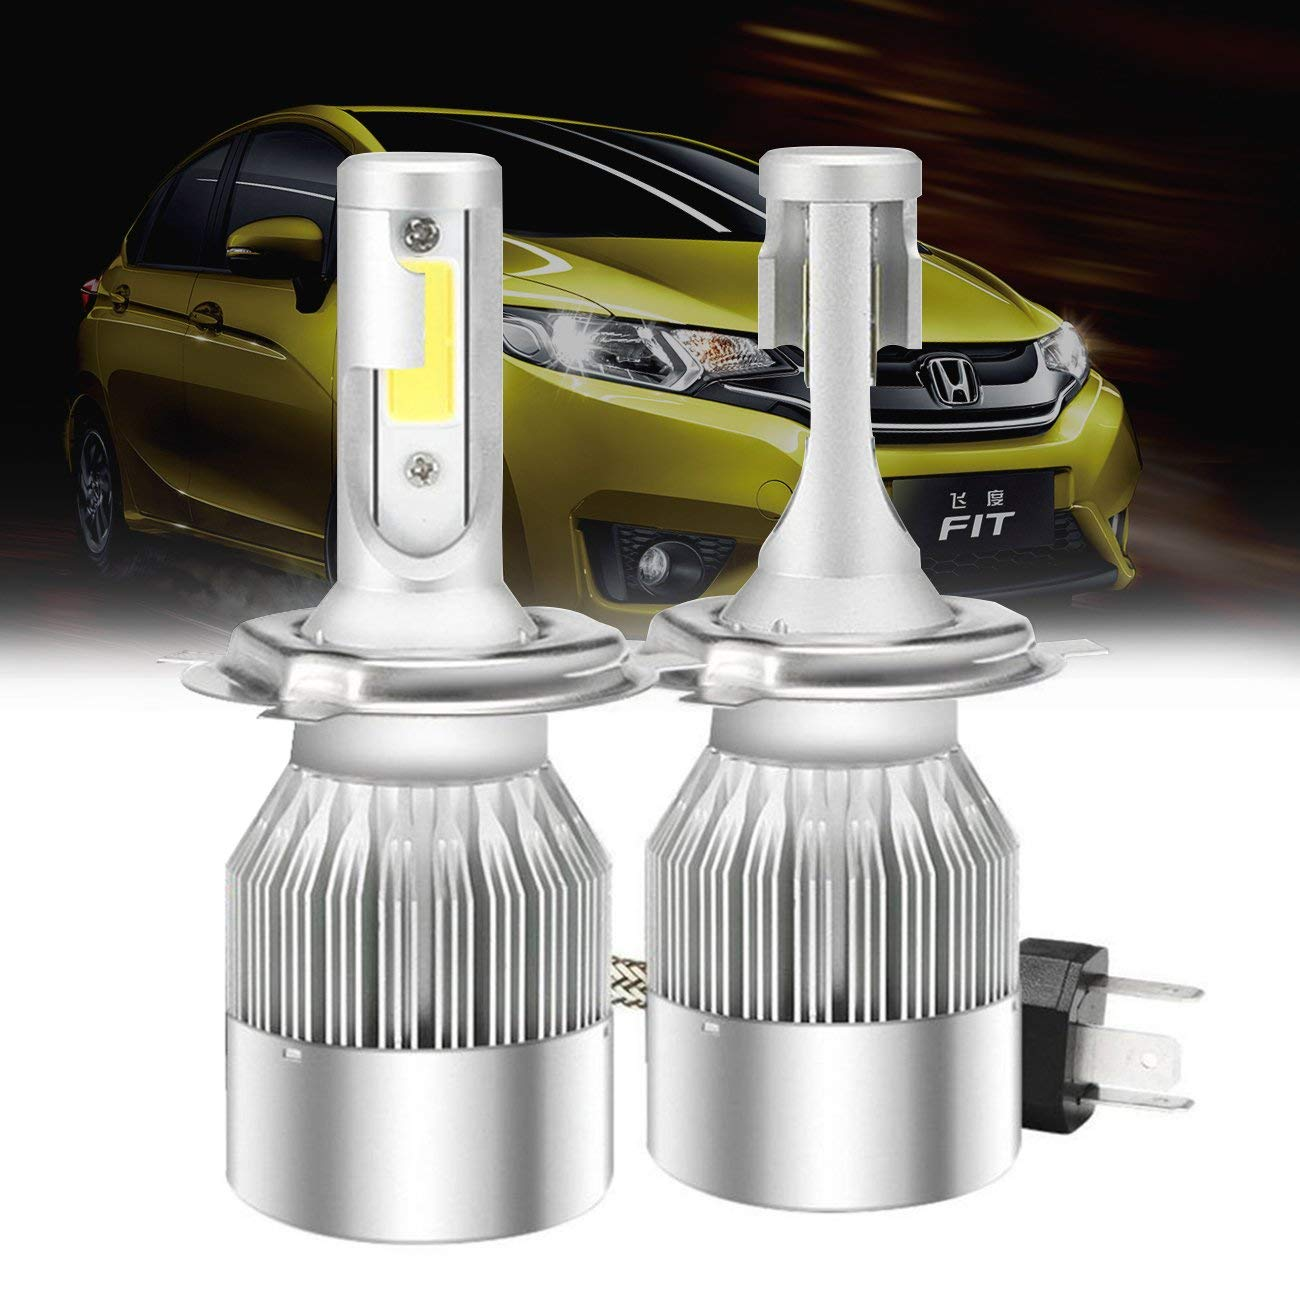 Mesllin H3 LED Headlight Bulbs 2 Yr Warranty COB Chips Auto Headlamps Conversion Kits Replacement for Car Halogen HID Xenon 120W 20000LM 6000K White Bulbs H3